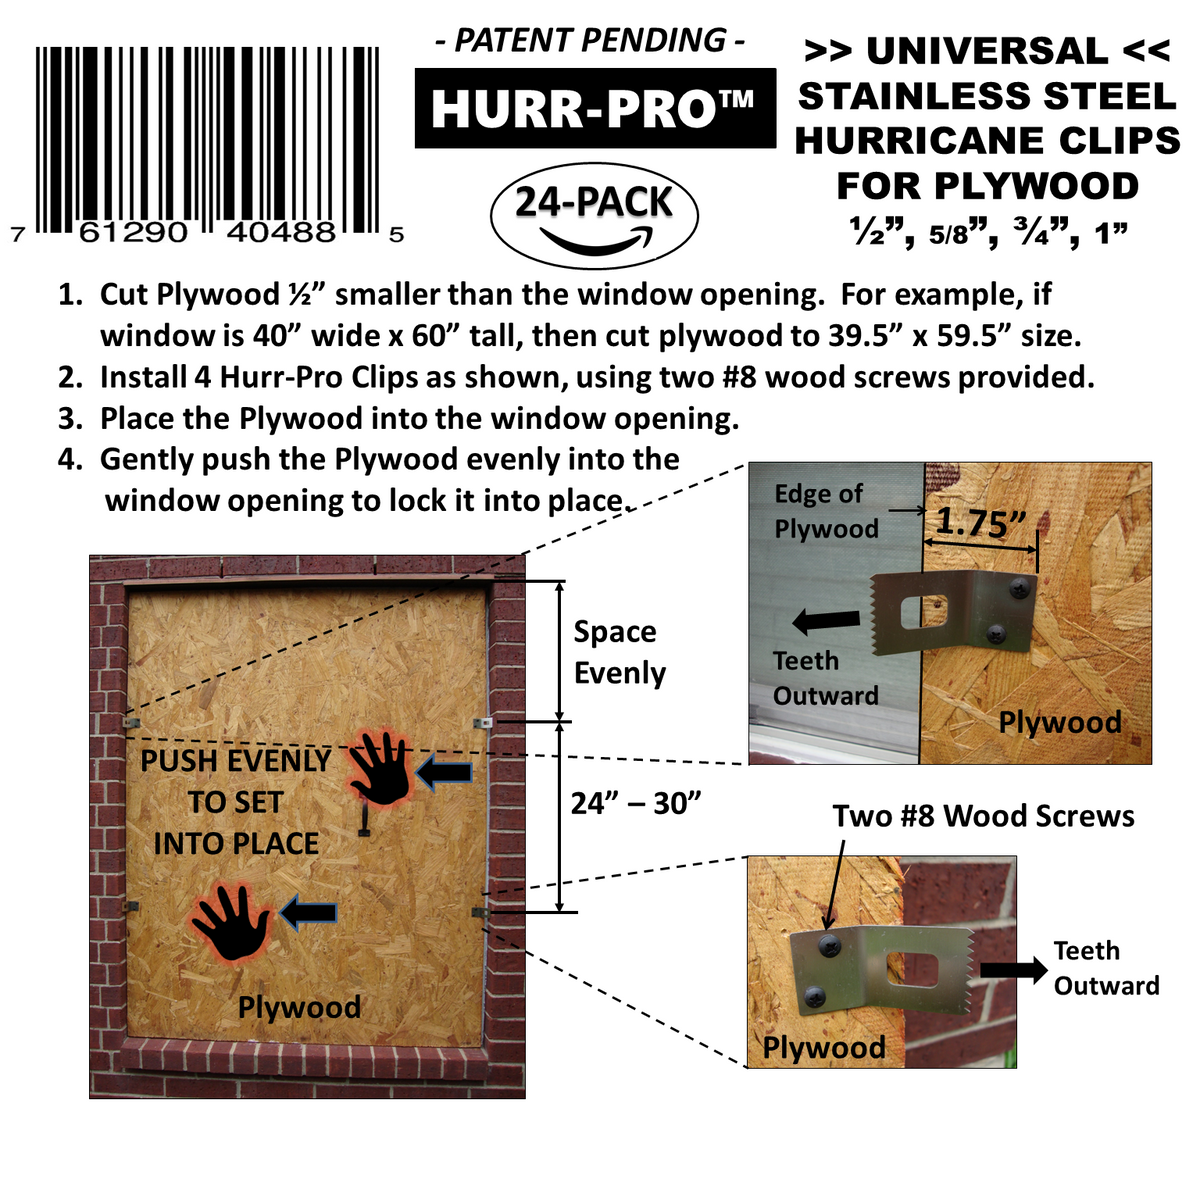 Hurricane Plywood clips